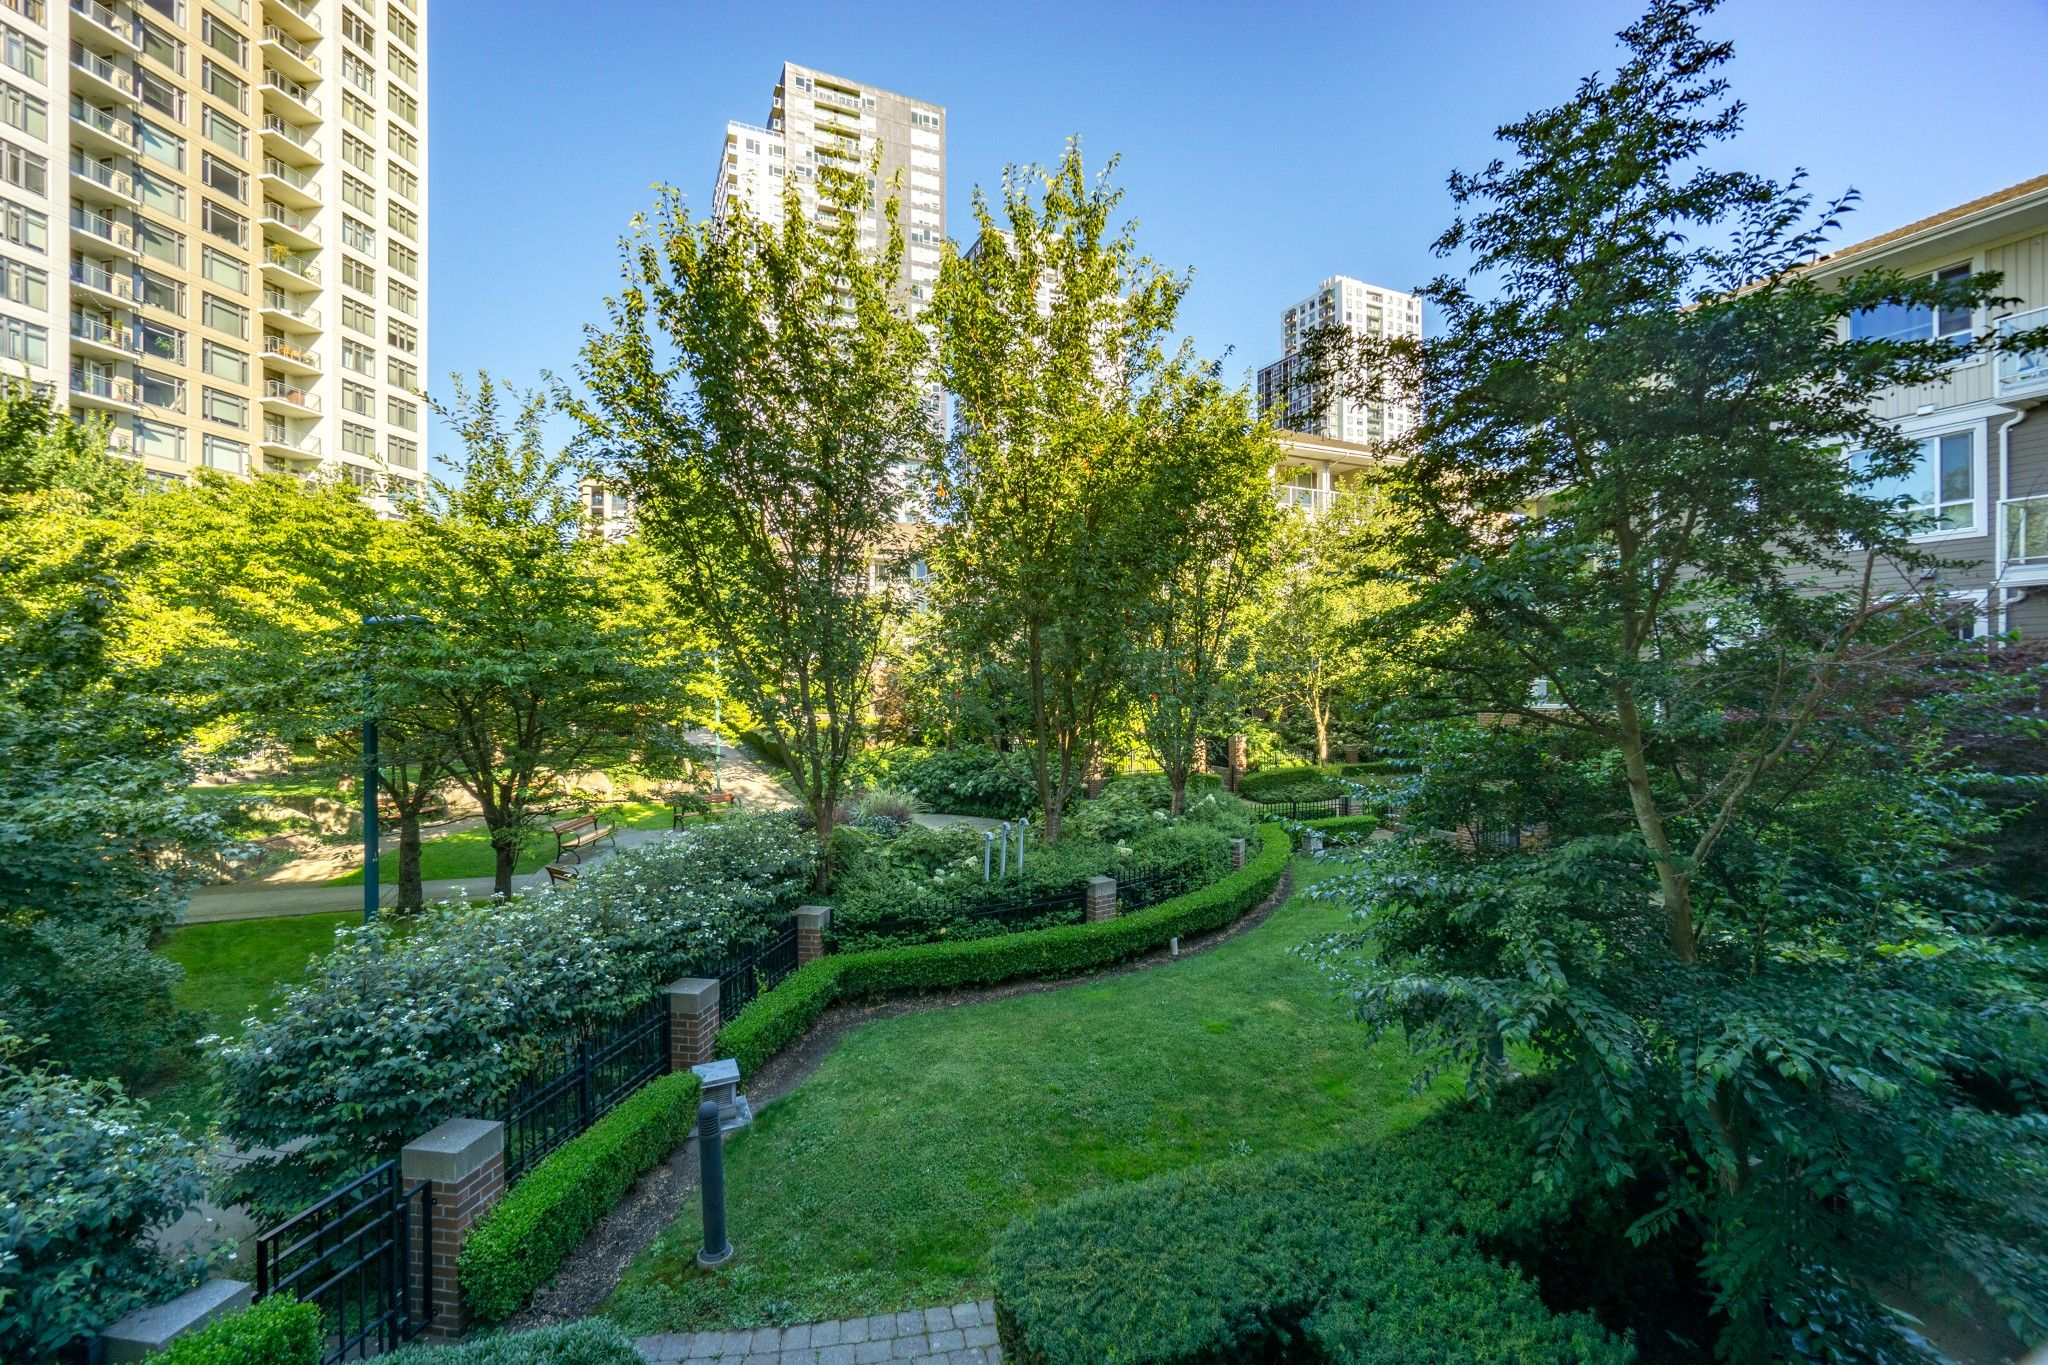 Photo 16: Photos: 208 3551 FOSTER Avenue in Vancouver: Collingwood VE Condo for sale (Vancouver East)  : MLS®# R2291555